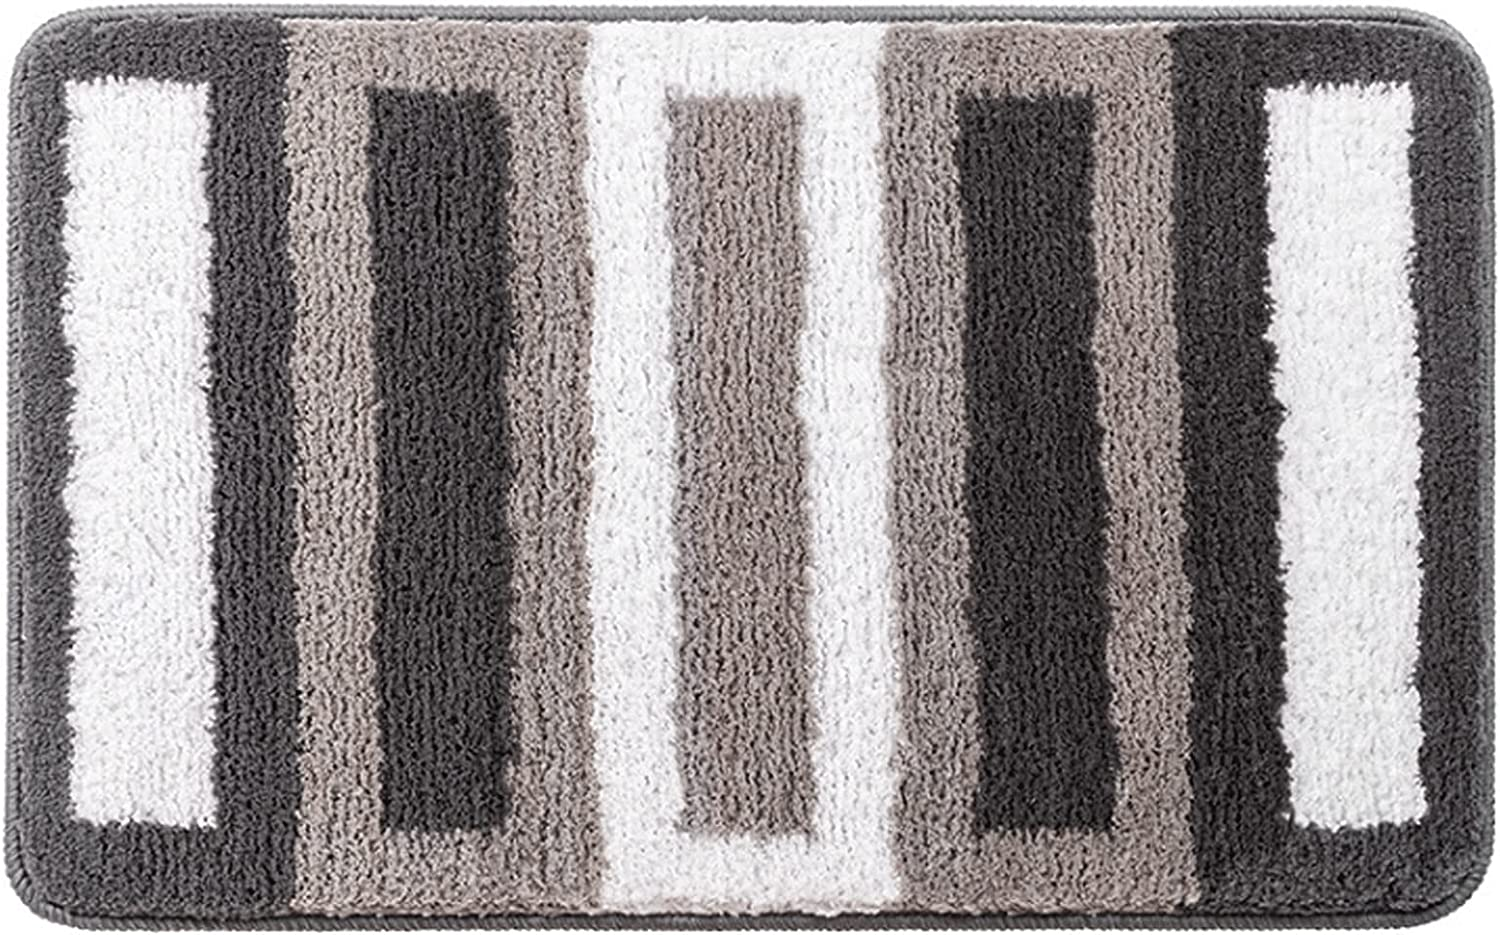 WPHGS Bathroom Rugs Rug Max Max 88% OFF 50% OFF Mat and Ultra Absorb Soft